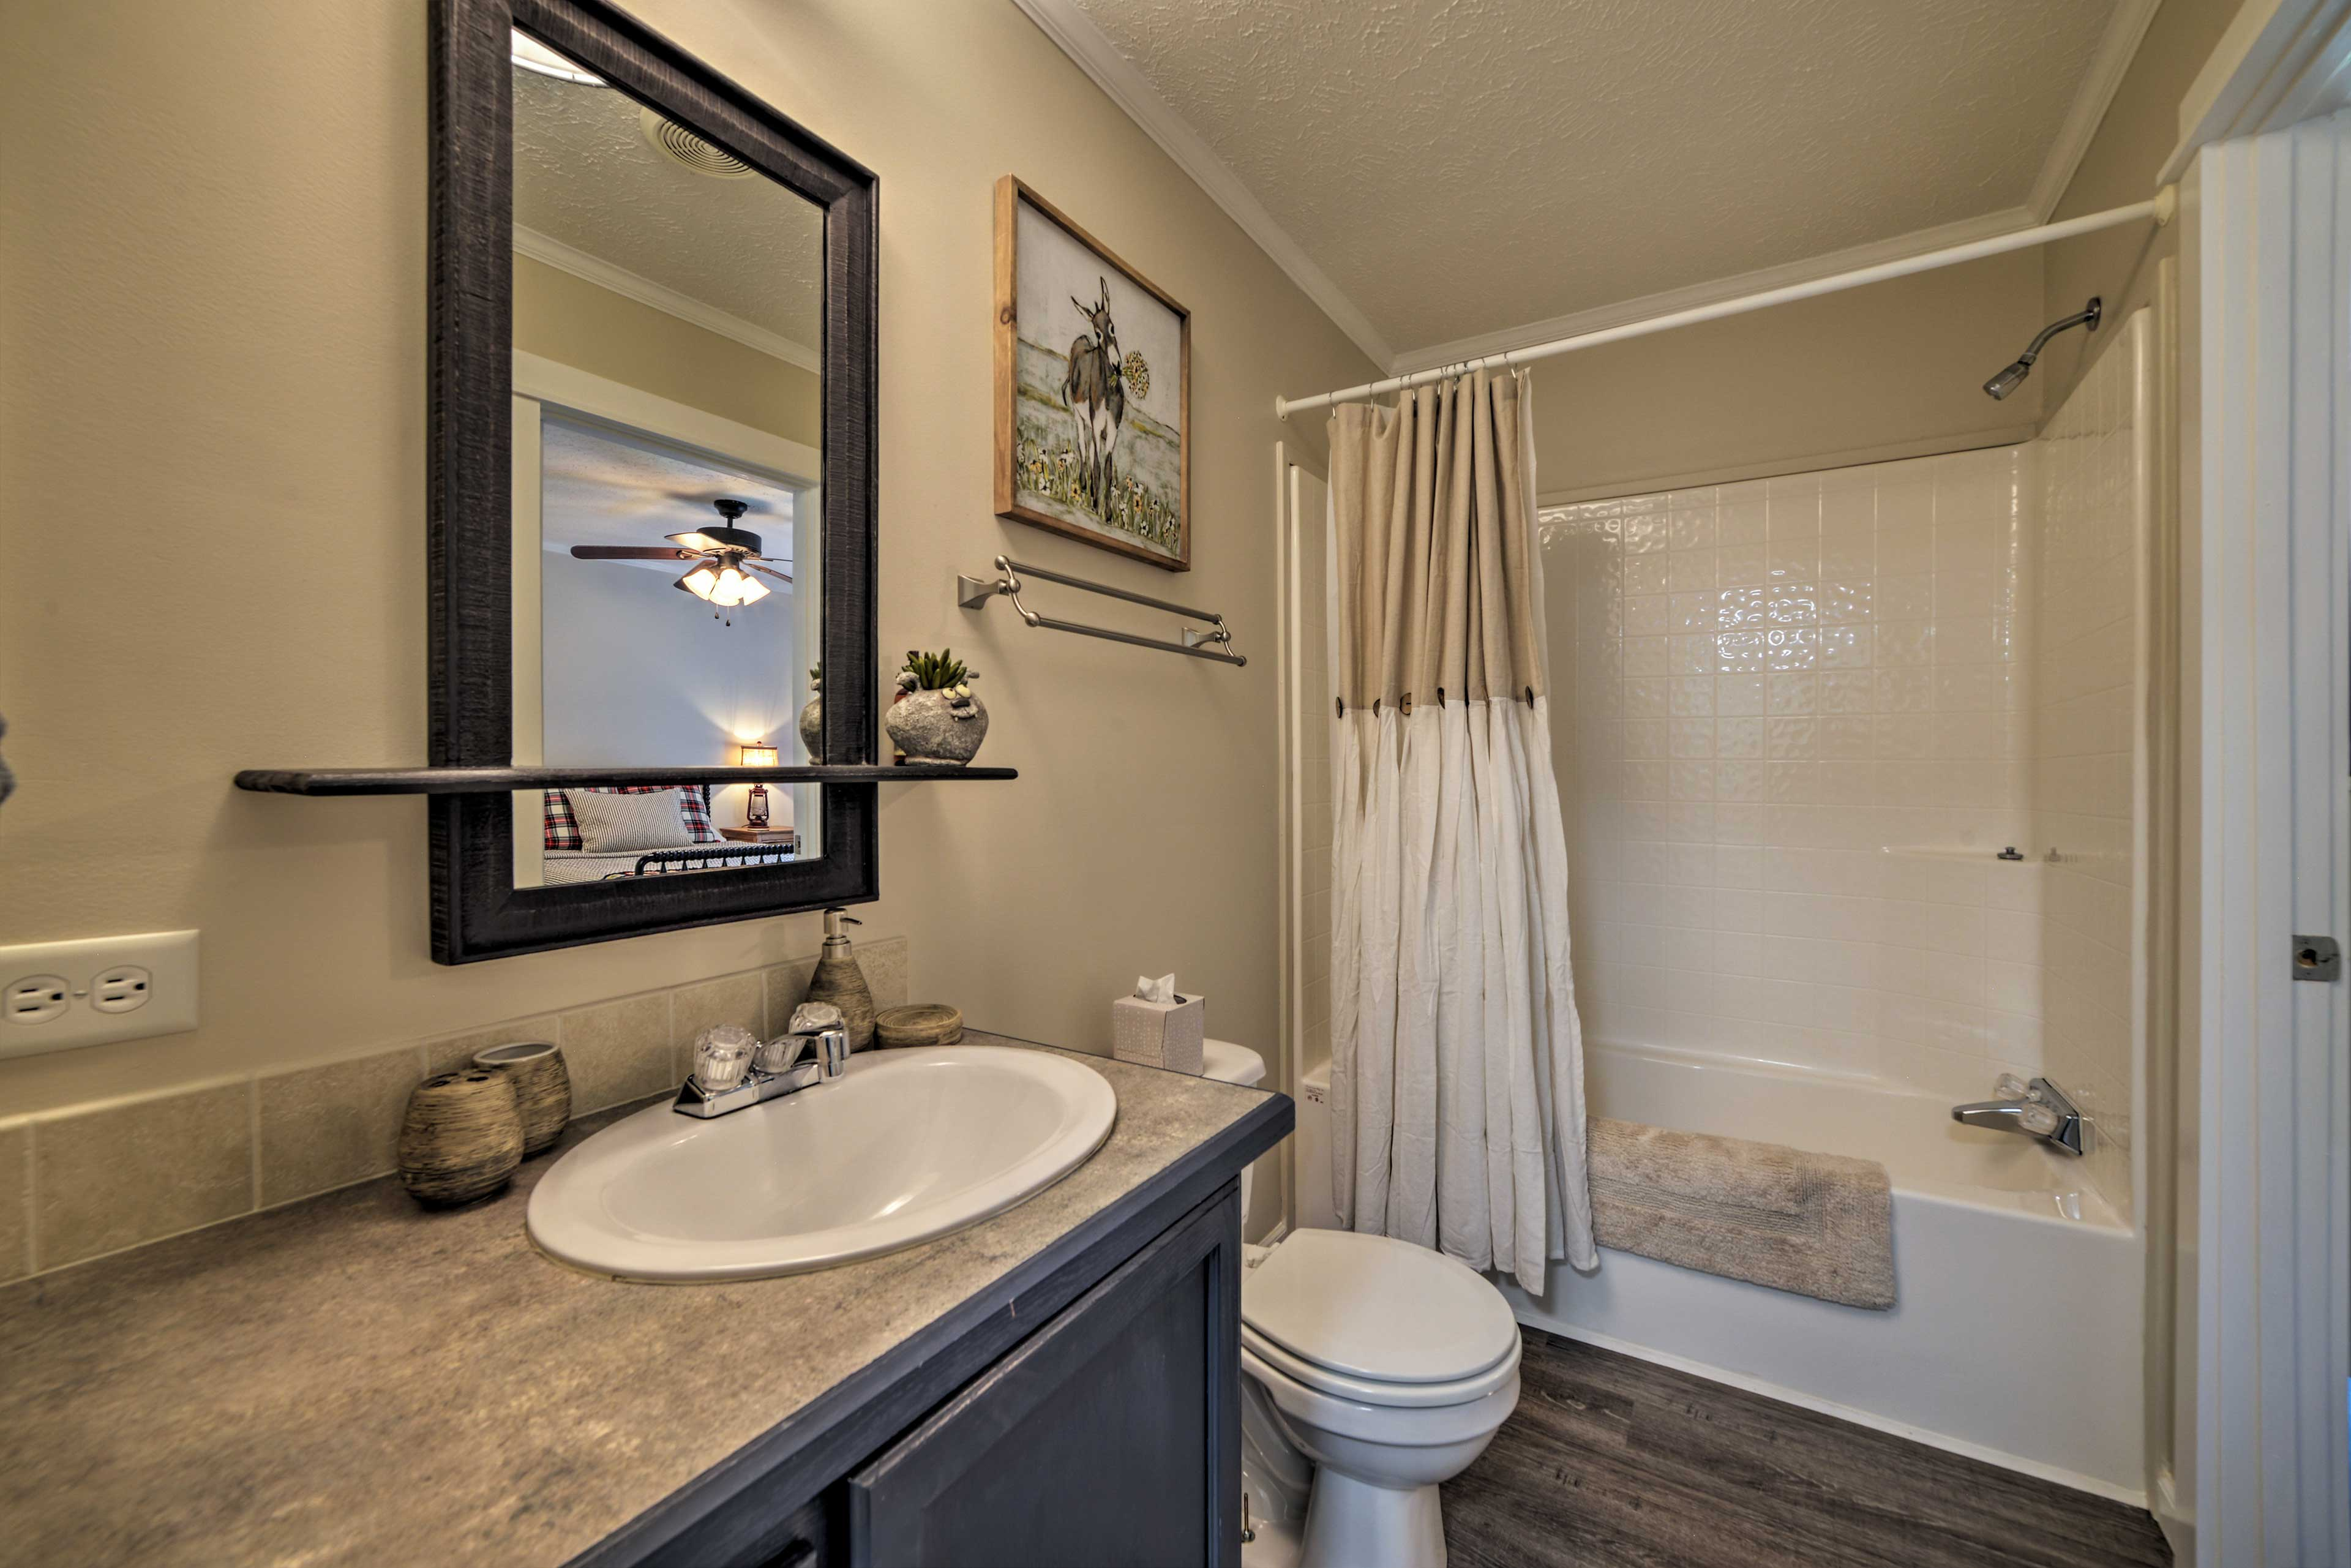 Prep for the day with the shower/tub combo.